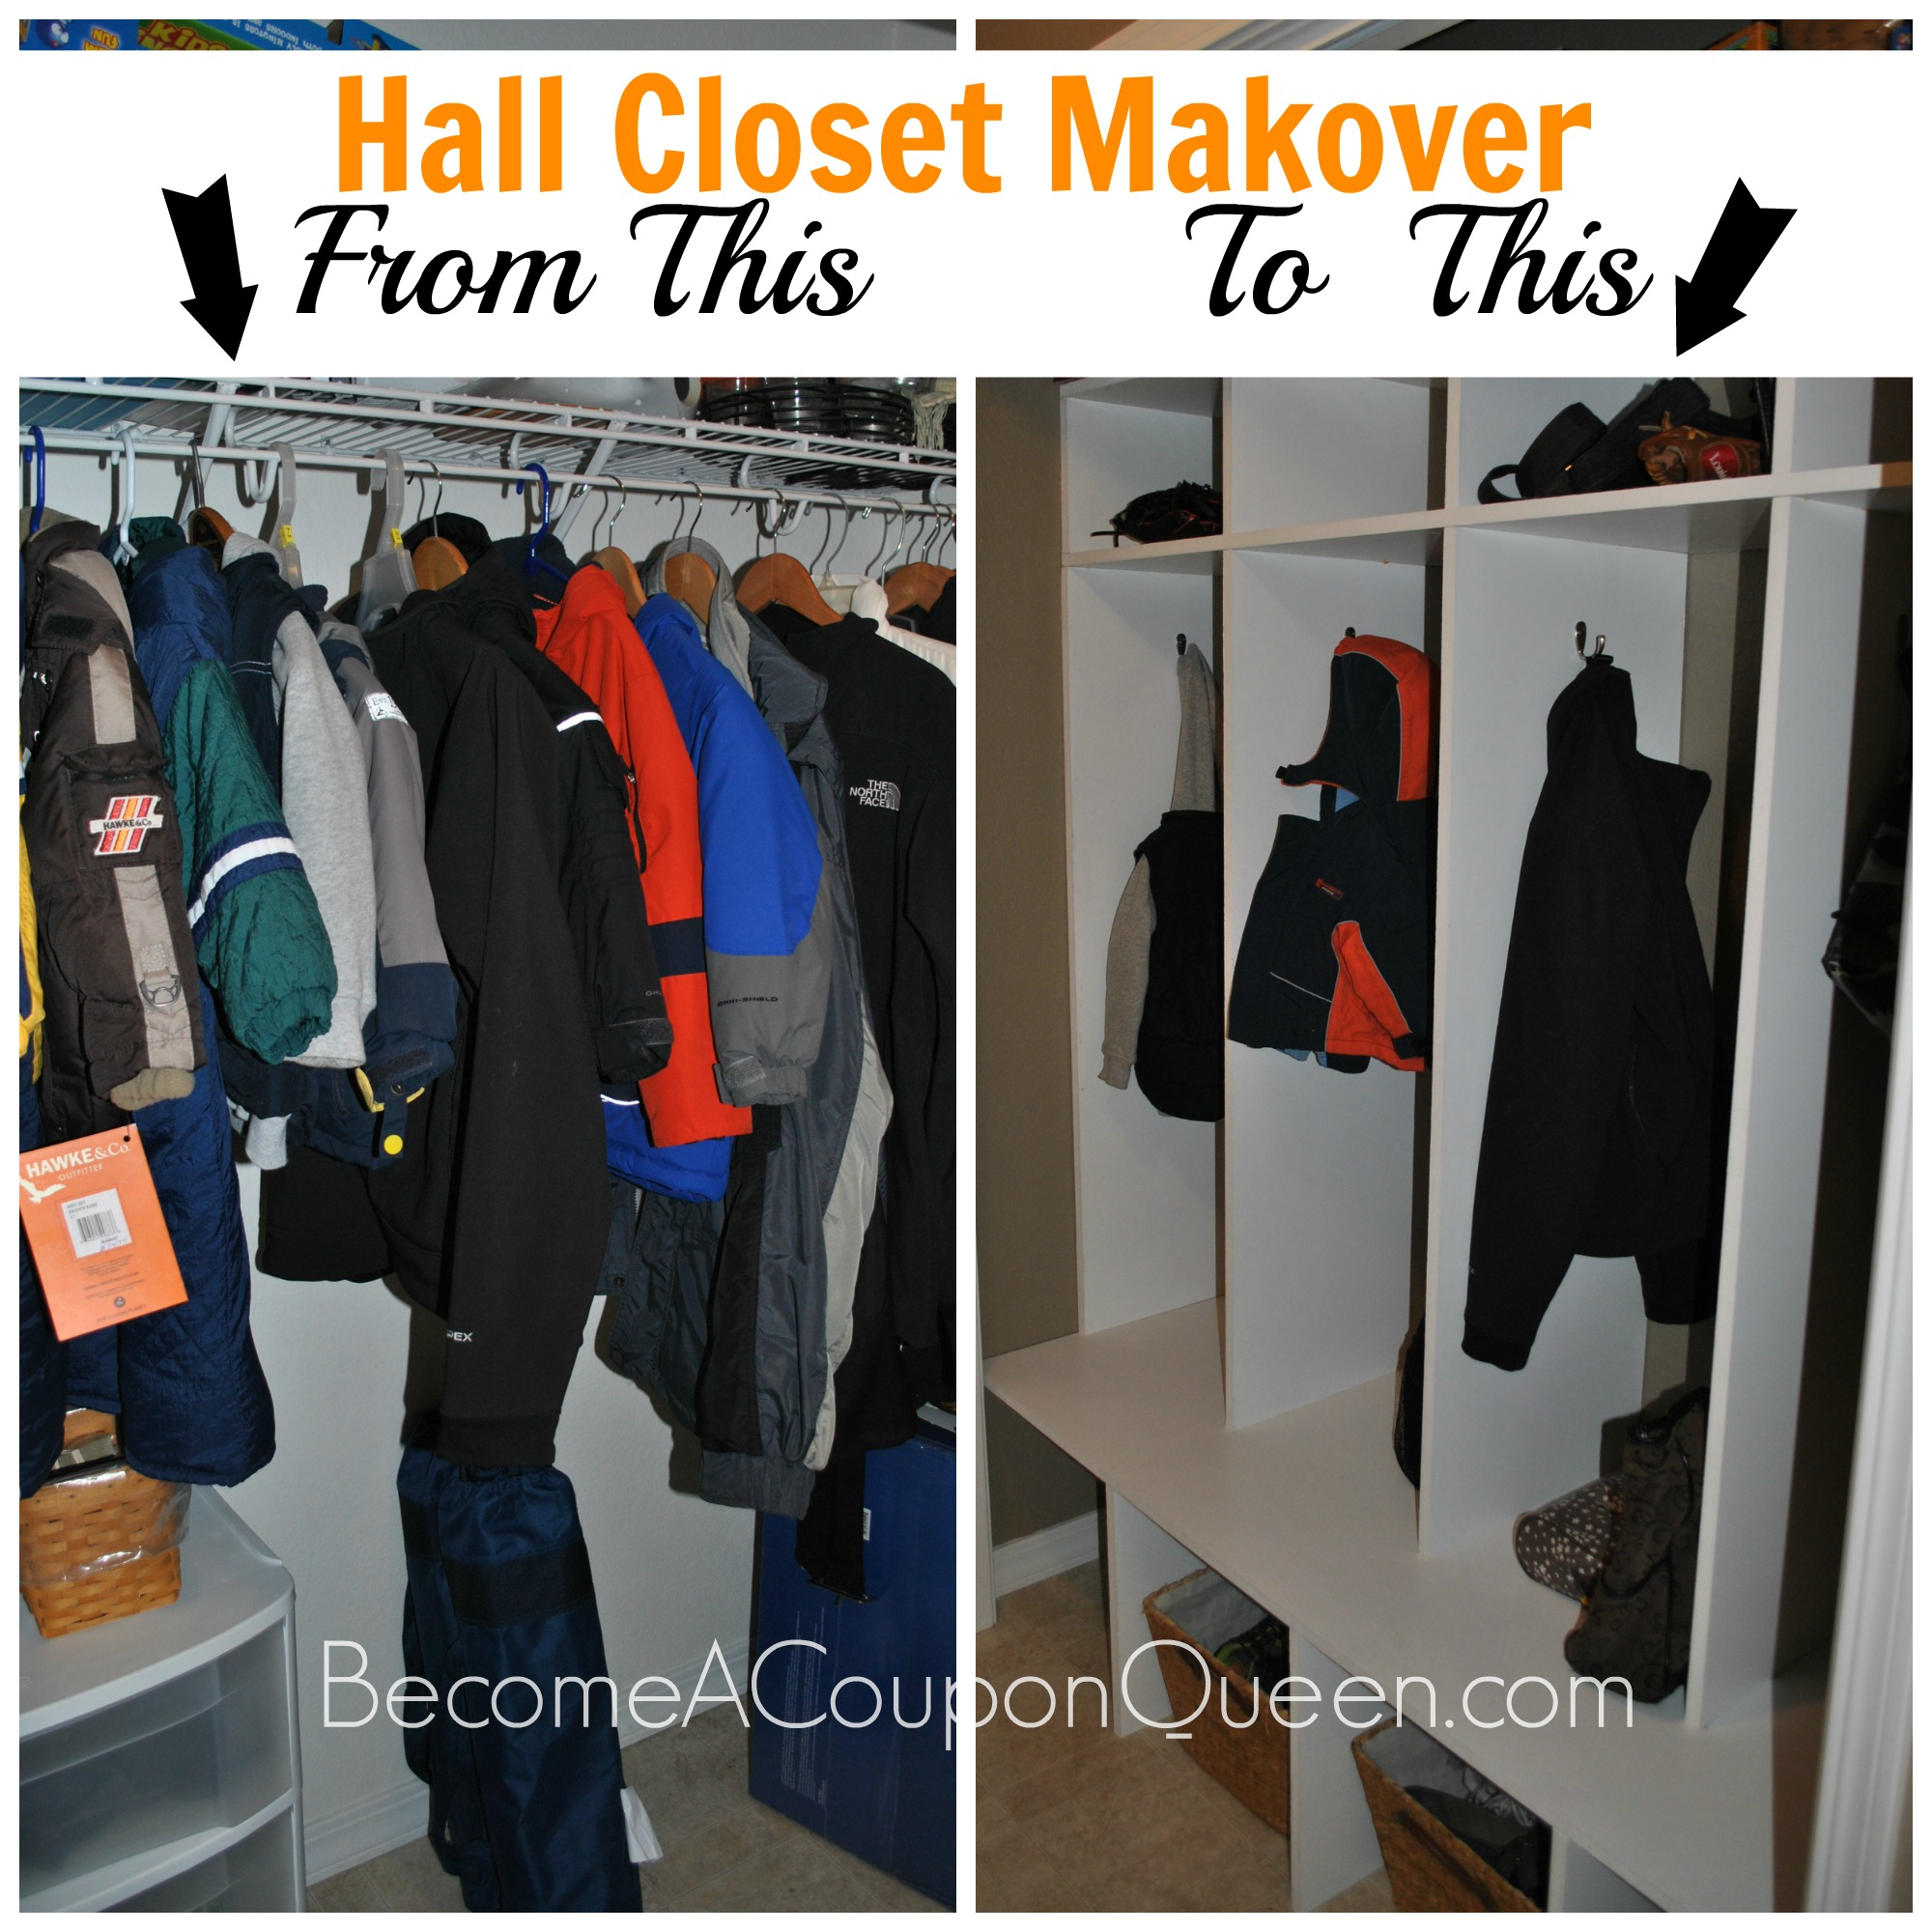 Hall Closet Makeover – From Closet to Lockers!